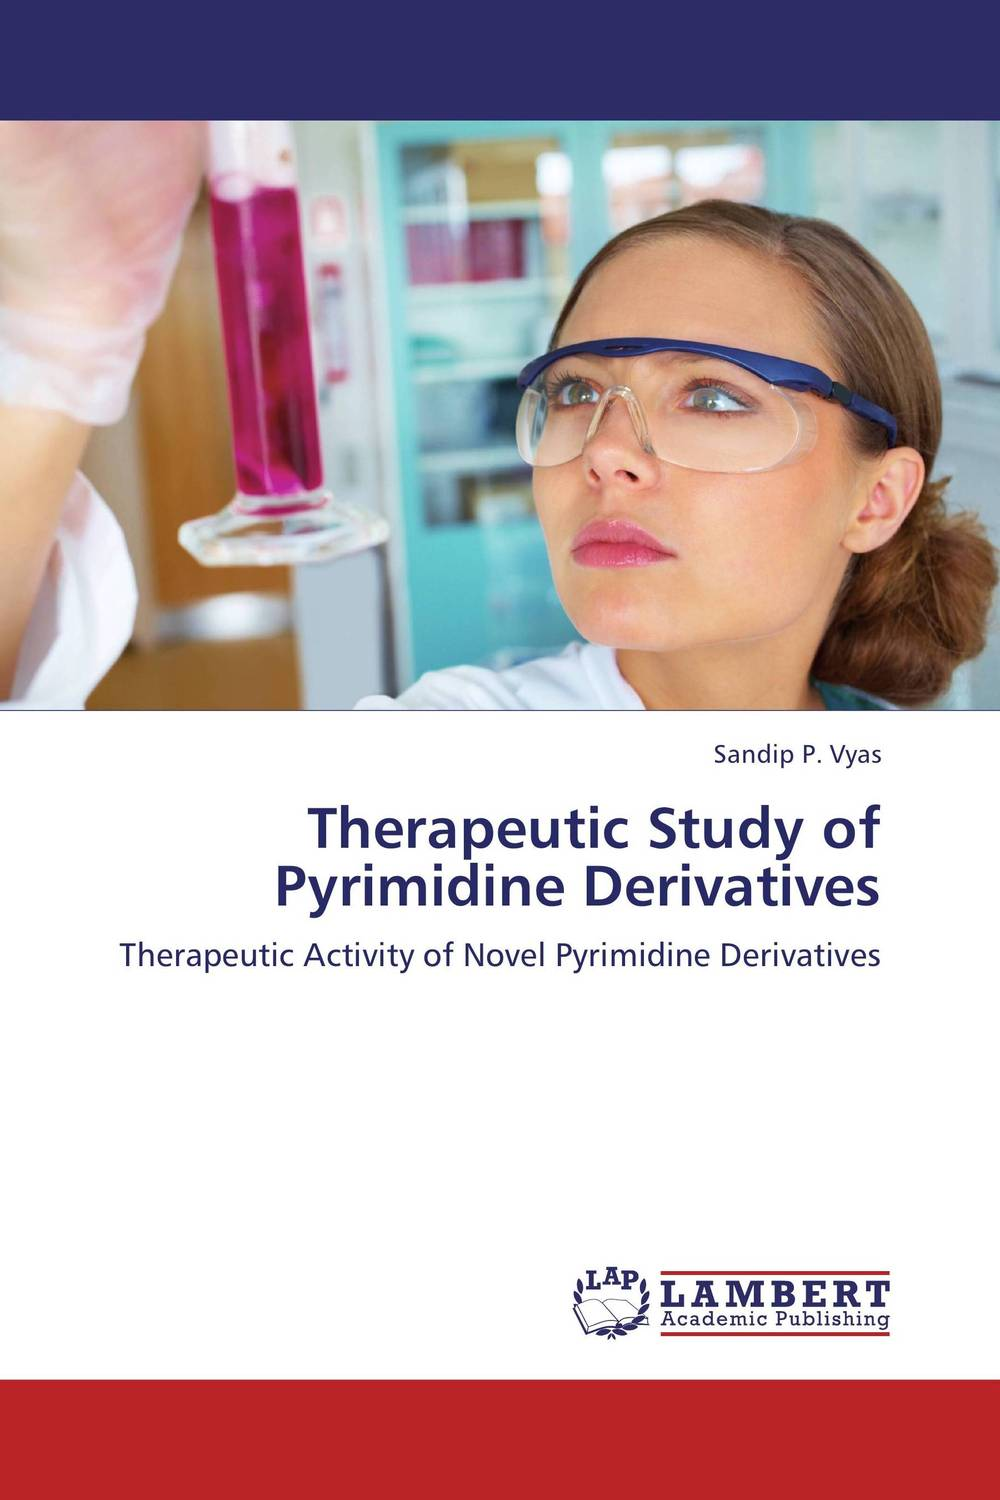 Therapeutic Study of Pyrimidine Derivatives moorad choudhry fixed income securities and derivatives handbook